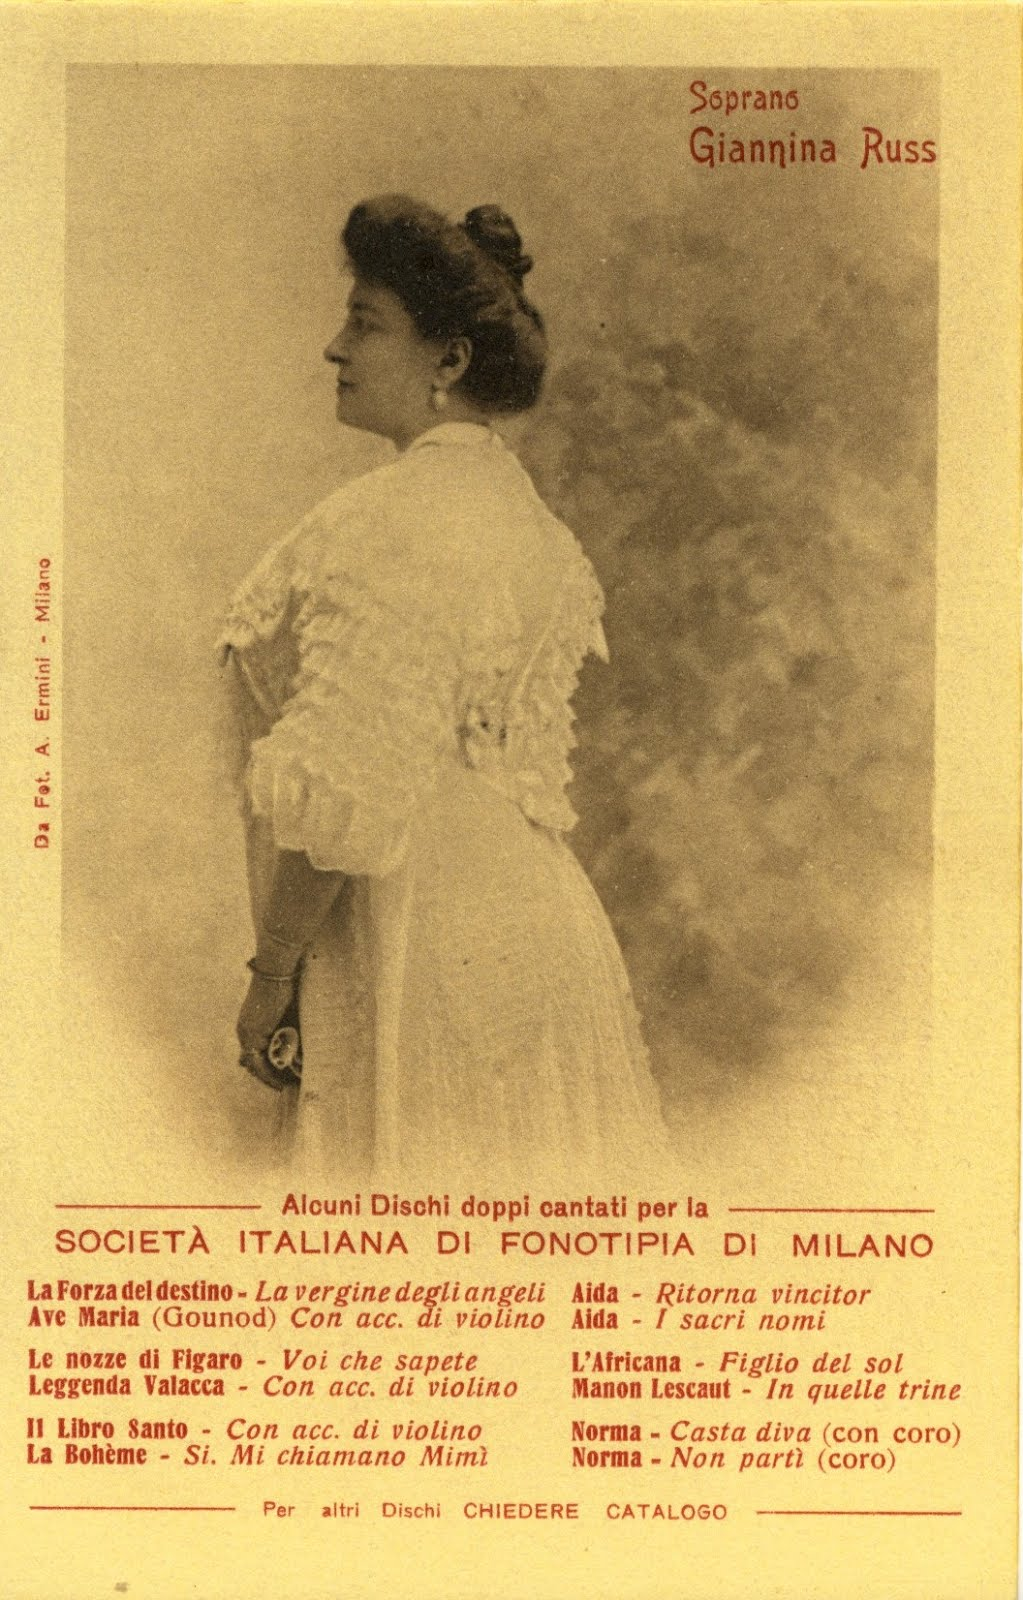 GREAT ITALIAN SOPRANO GIANNINA RUSS (1873-1951) CD